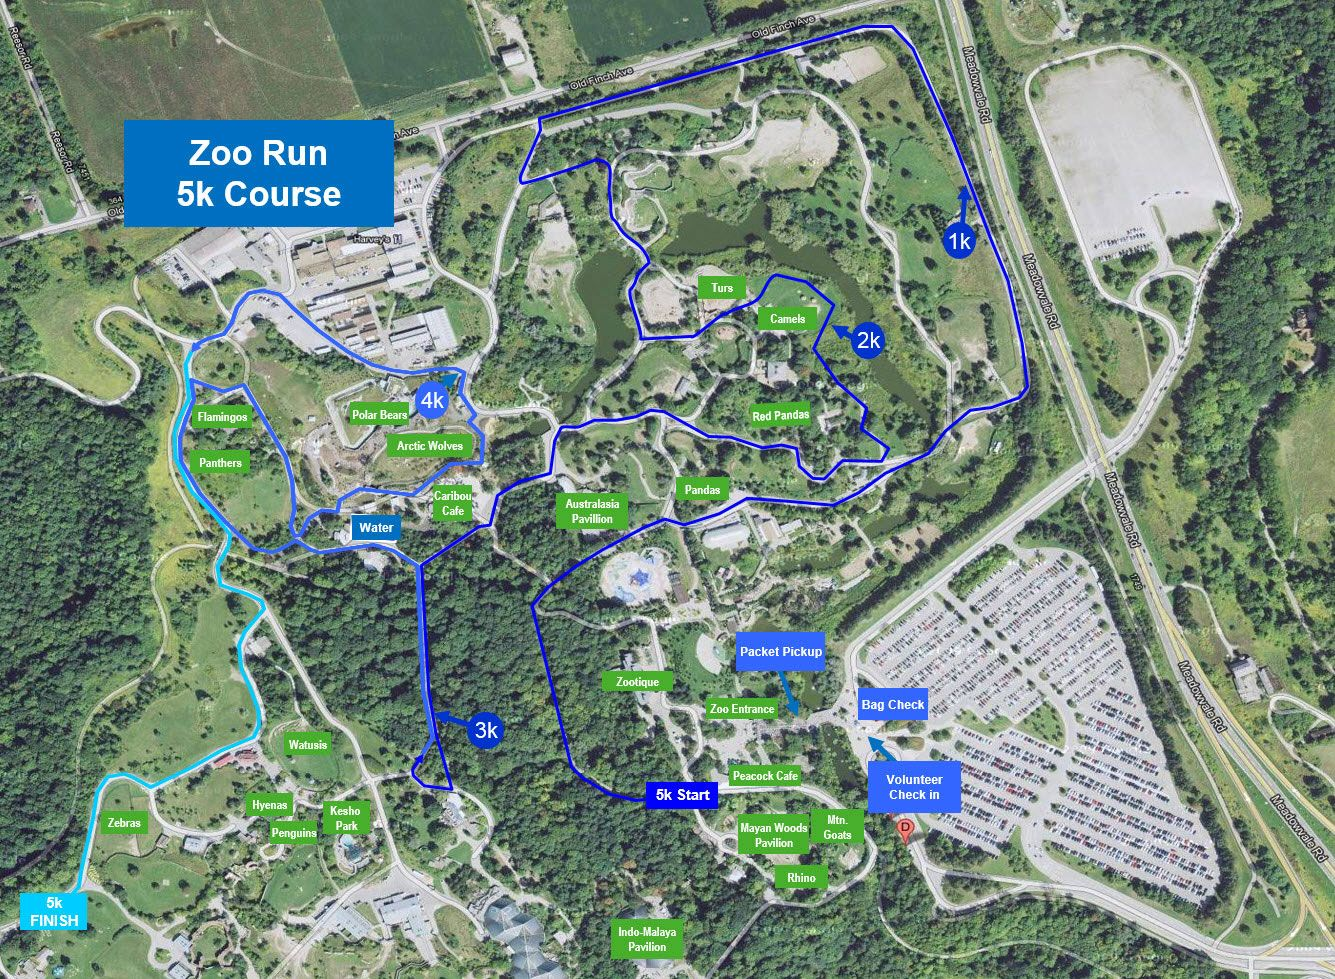 Event Map Toronto Zoo Oasis 5k Run 2017 Canada Running Series